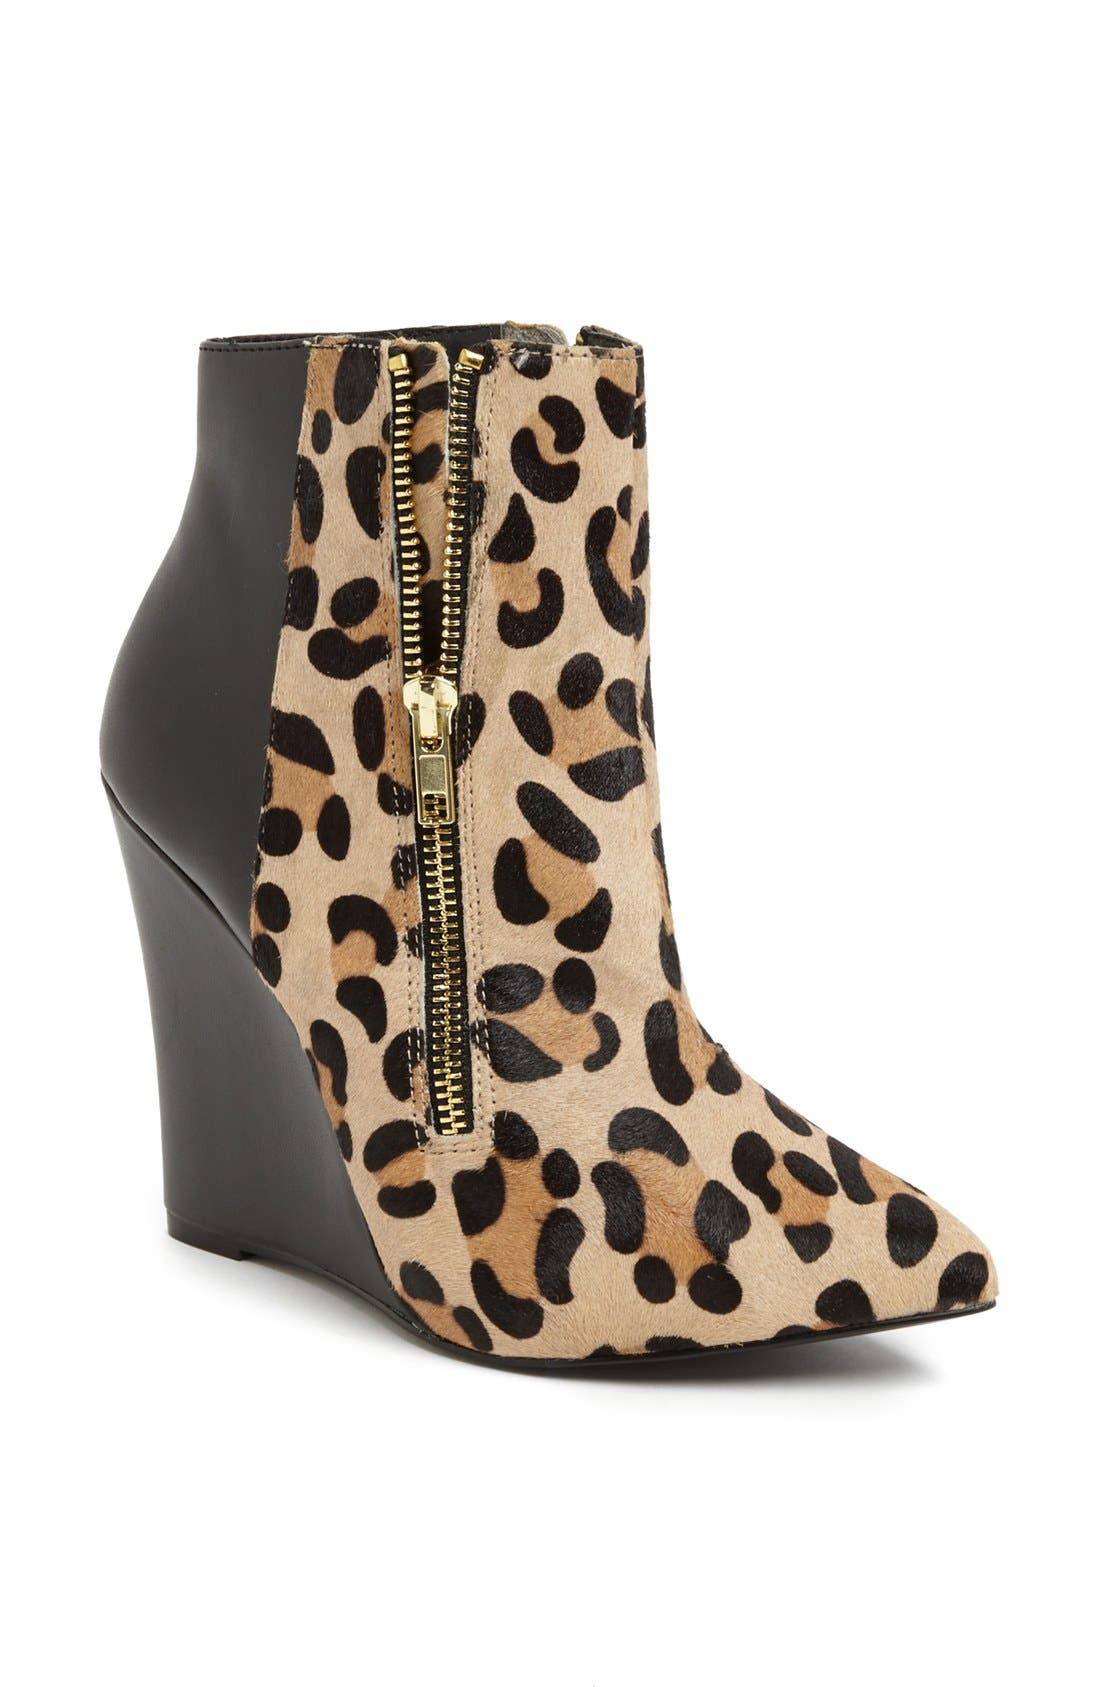 Alternate Image 1 Selected - Steve Madden 'Daaring' Wedge Boot